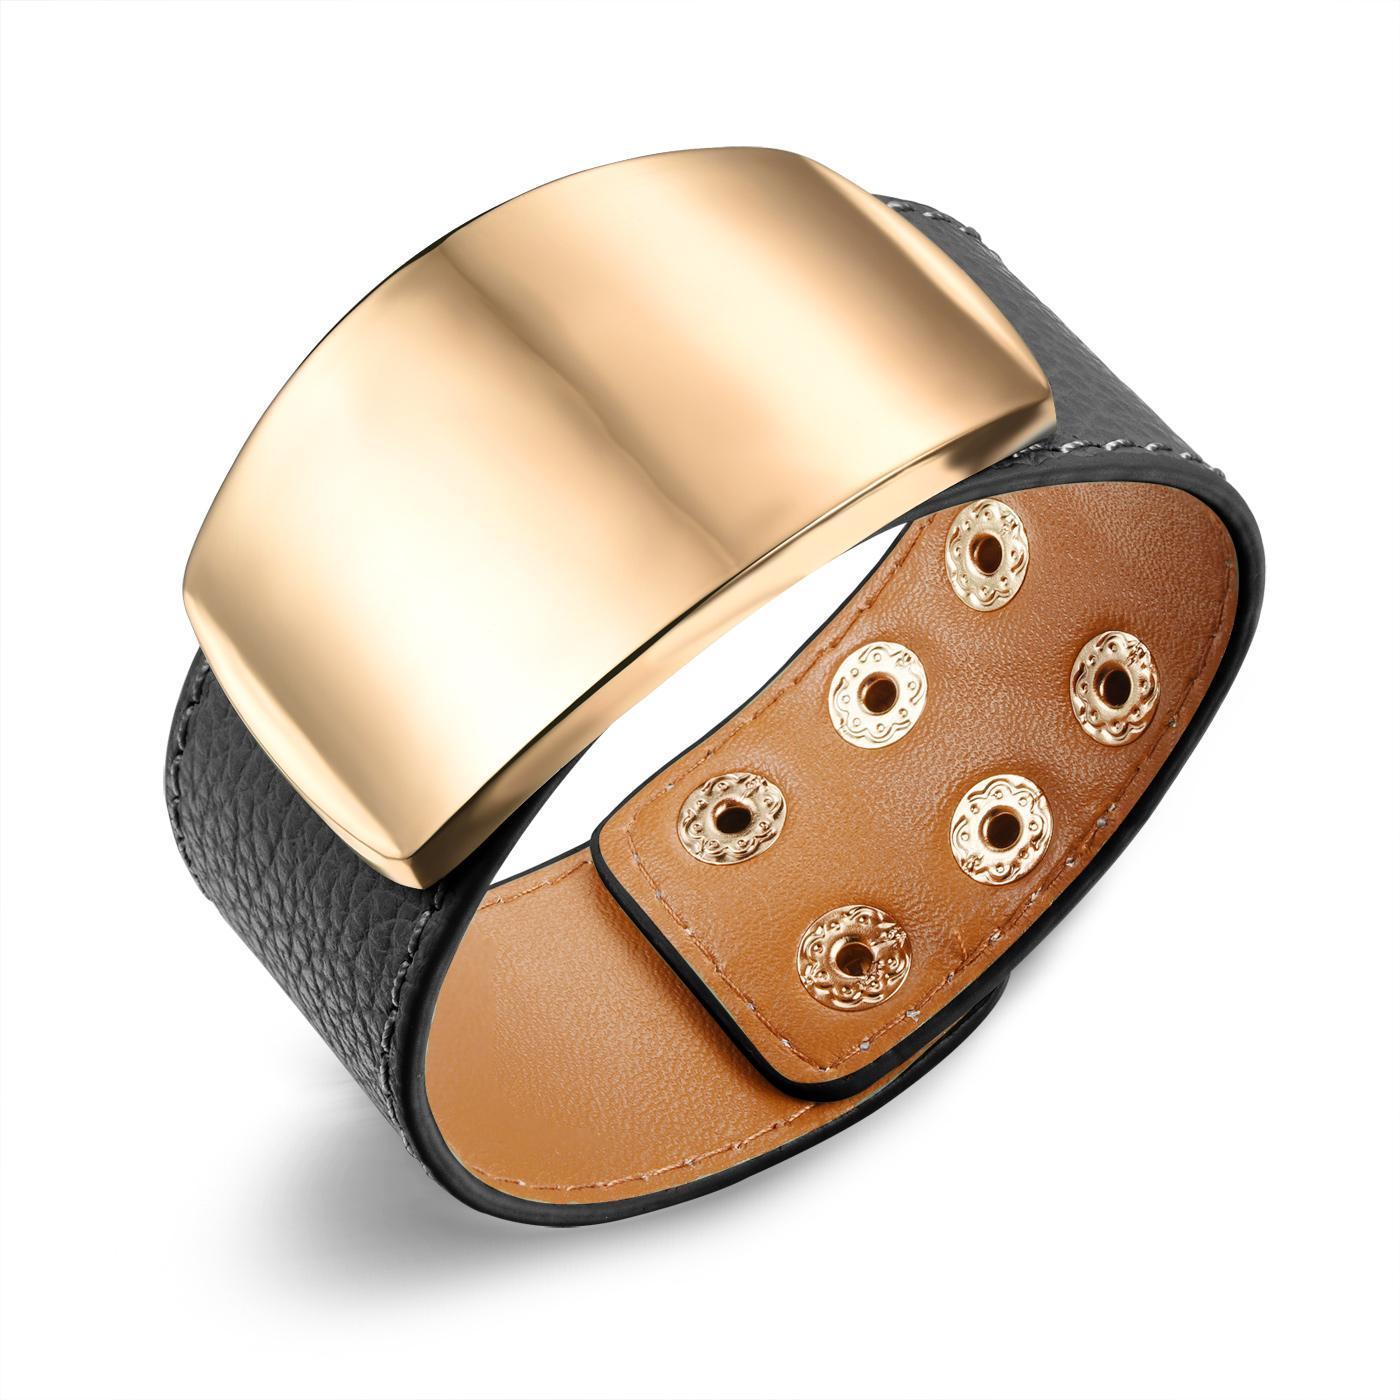 Womens Wide Leather Bracelet With Gold Plated Charm Accessories